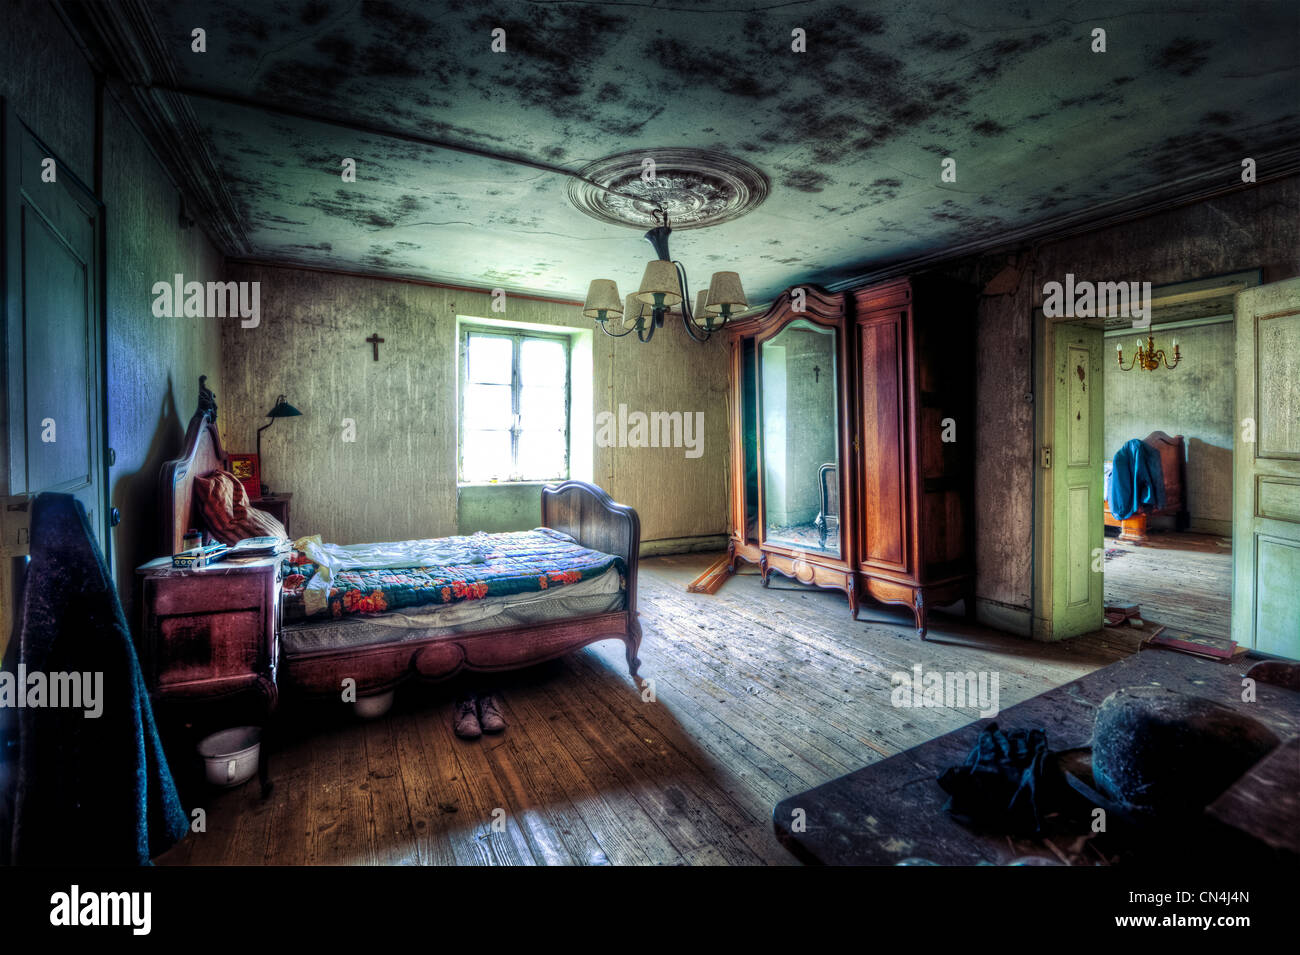 Bedroom in dilapidated house - Stock Image